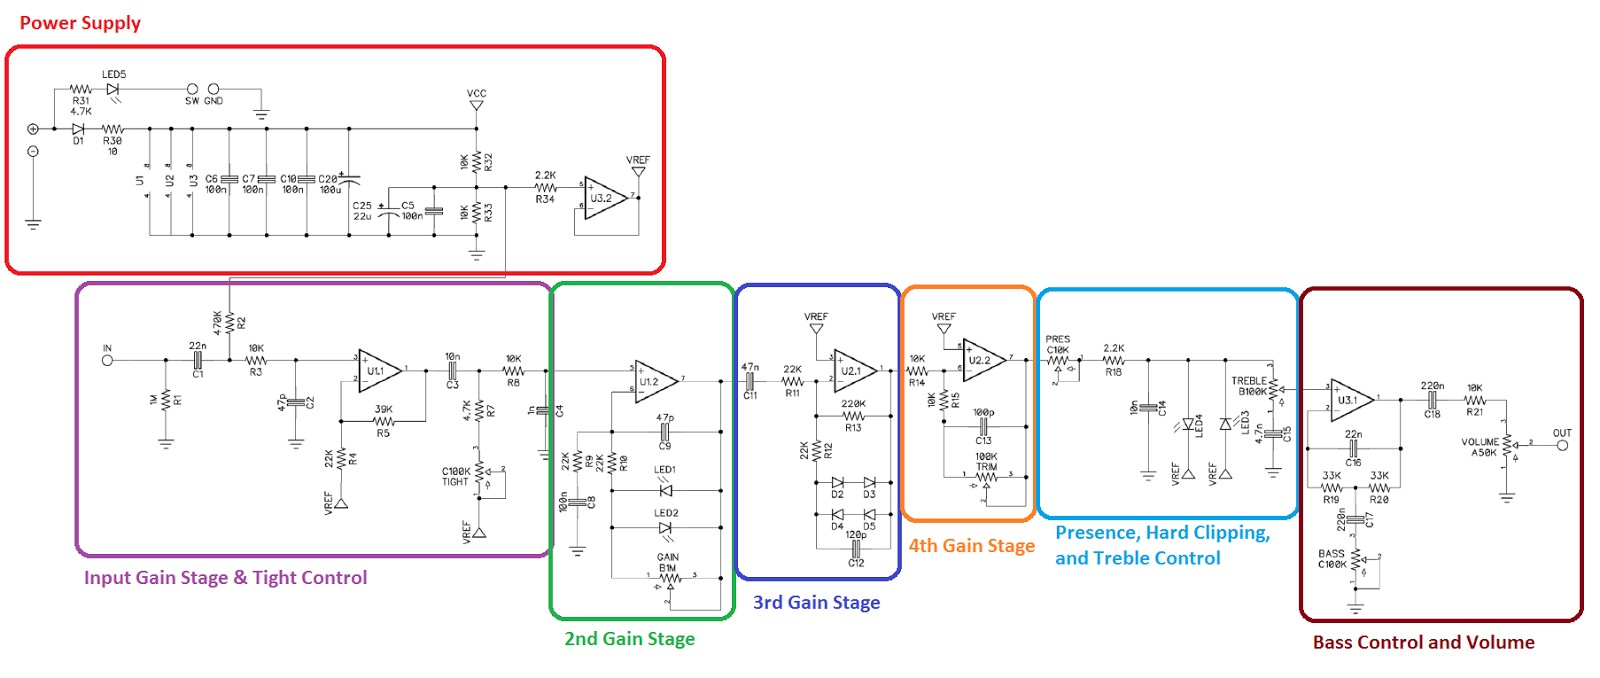 The signal path consists of 4 cascading gain stages like a tube amplifier might use some power filtering and various filters to shape your sound